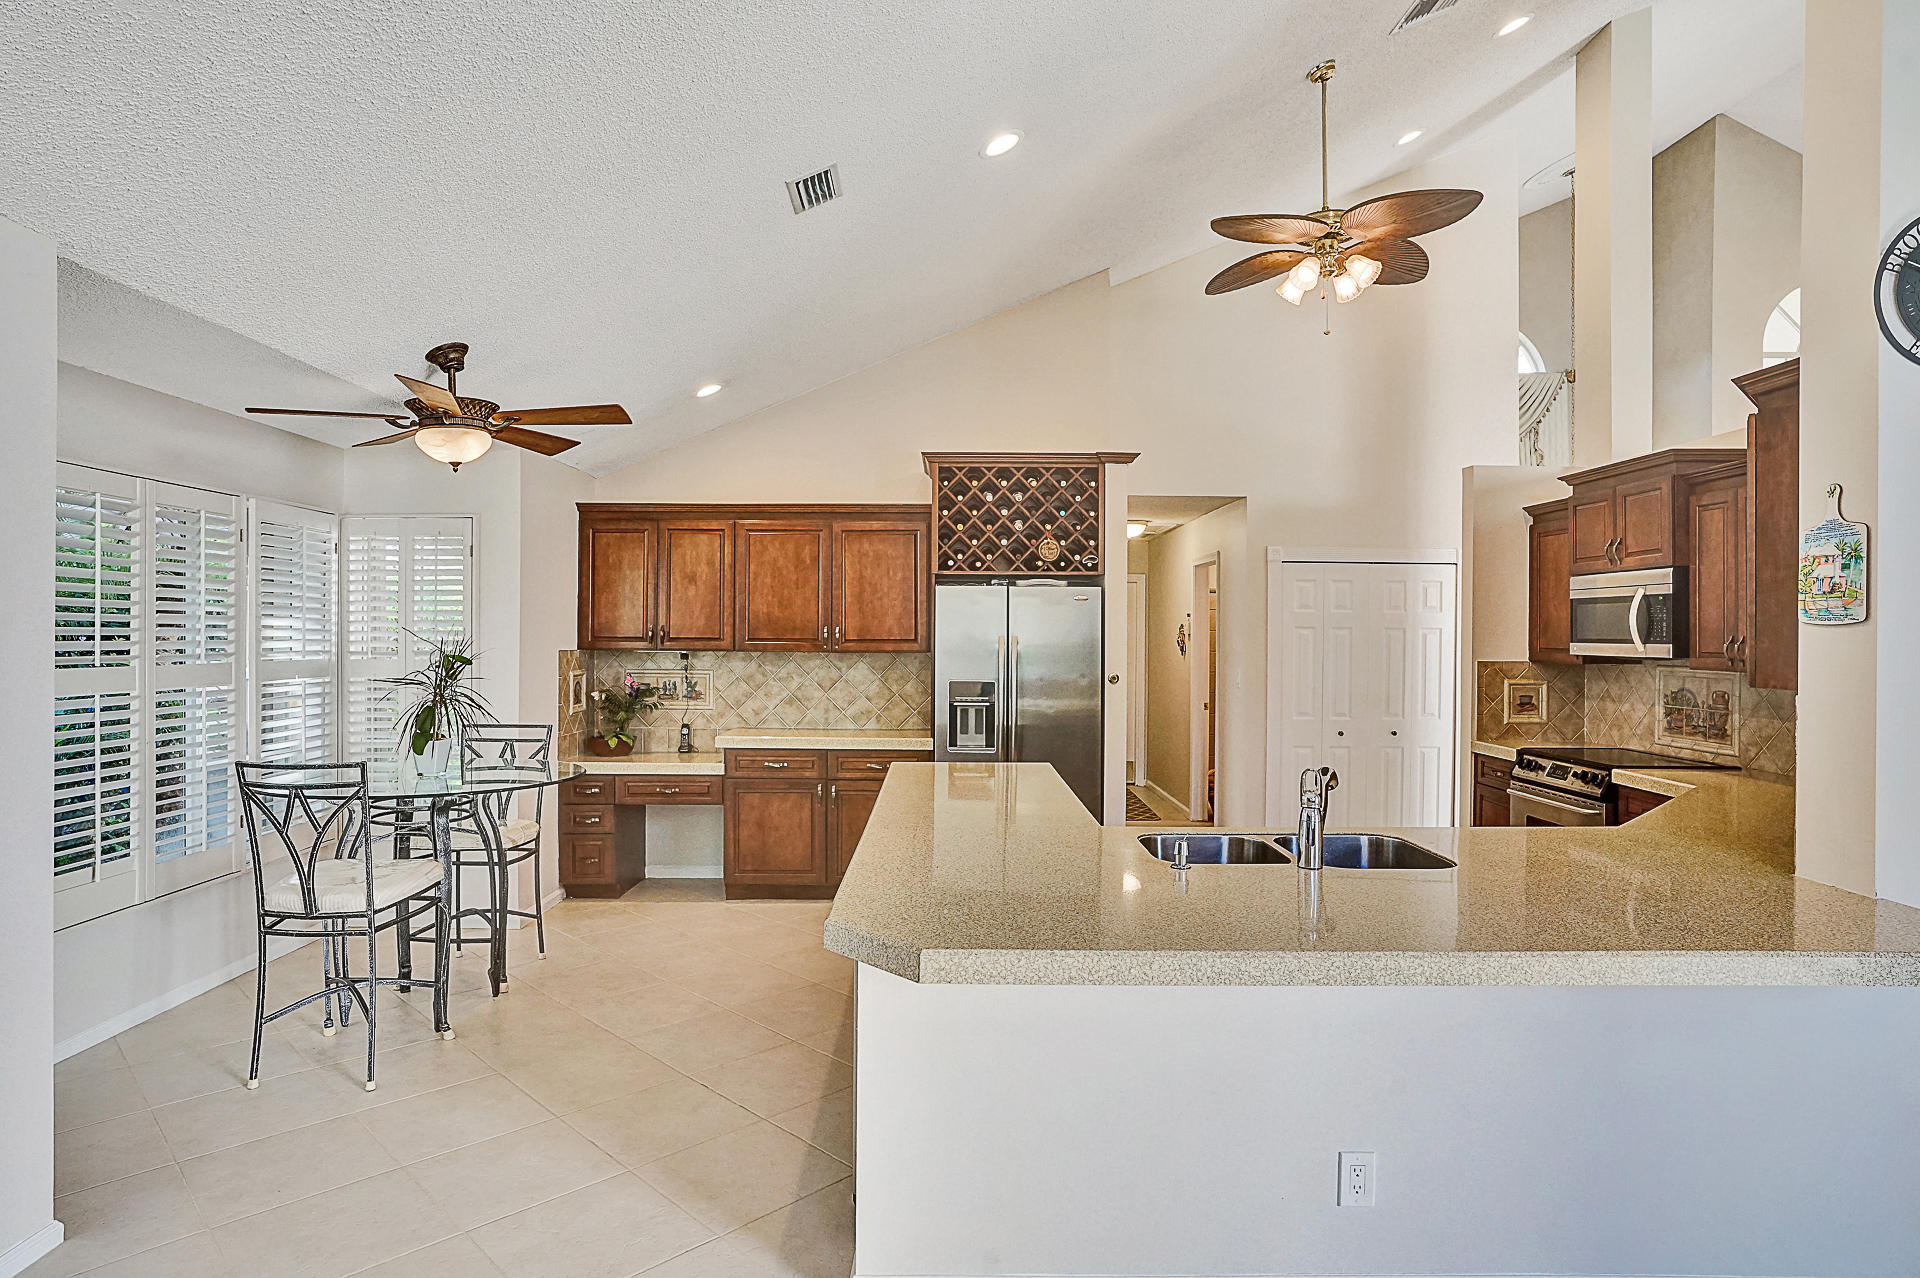 EAGLE TRACE CORAL SPRINGS REAL ESTATE